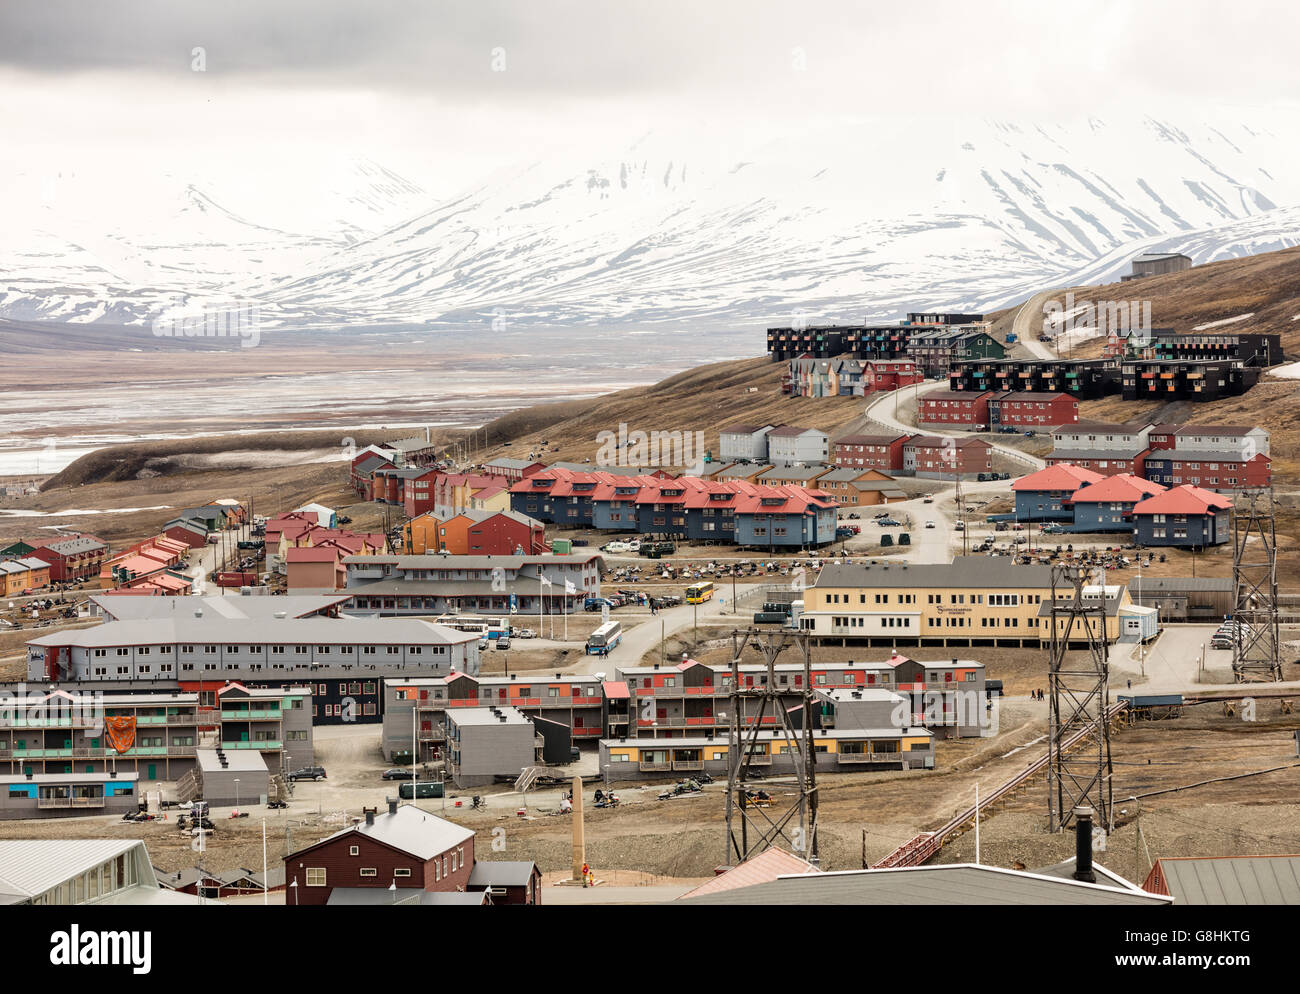 Multicolored houses pn Adventfjorden in the Arctic village of Longyearbyen, largest town in the Svalbard Archipelago - Stock Image